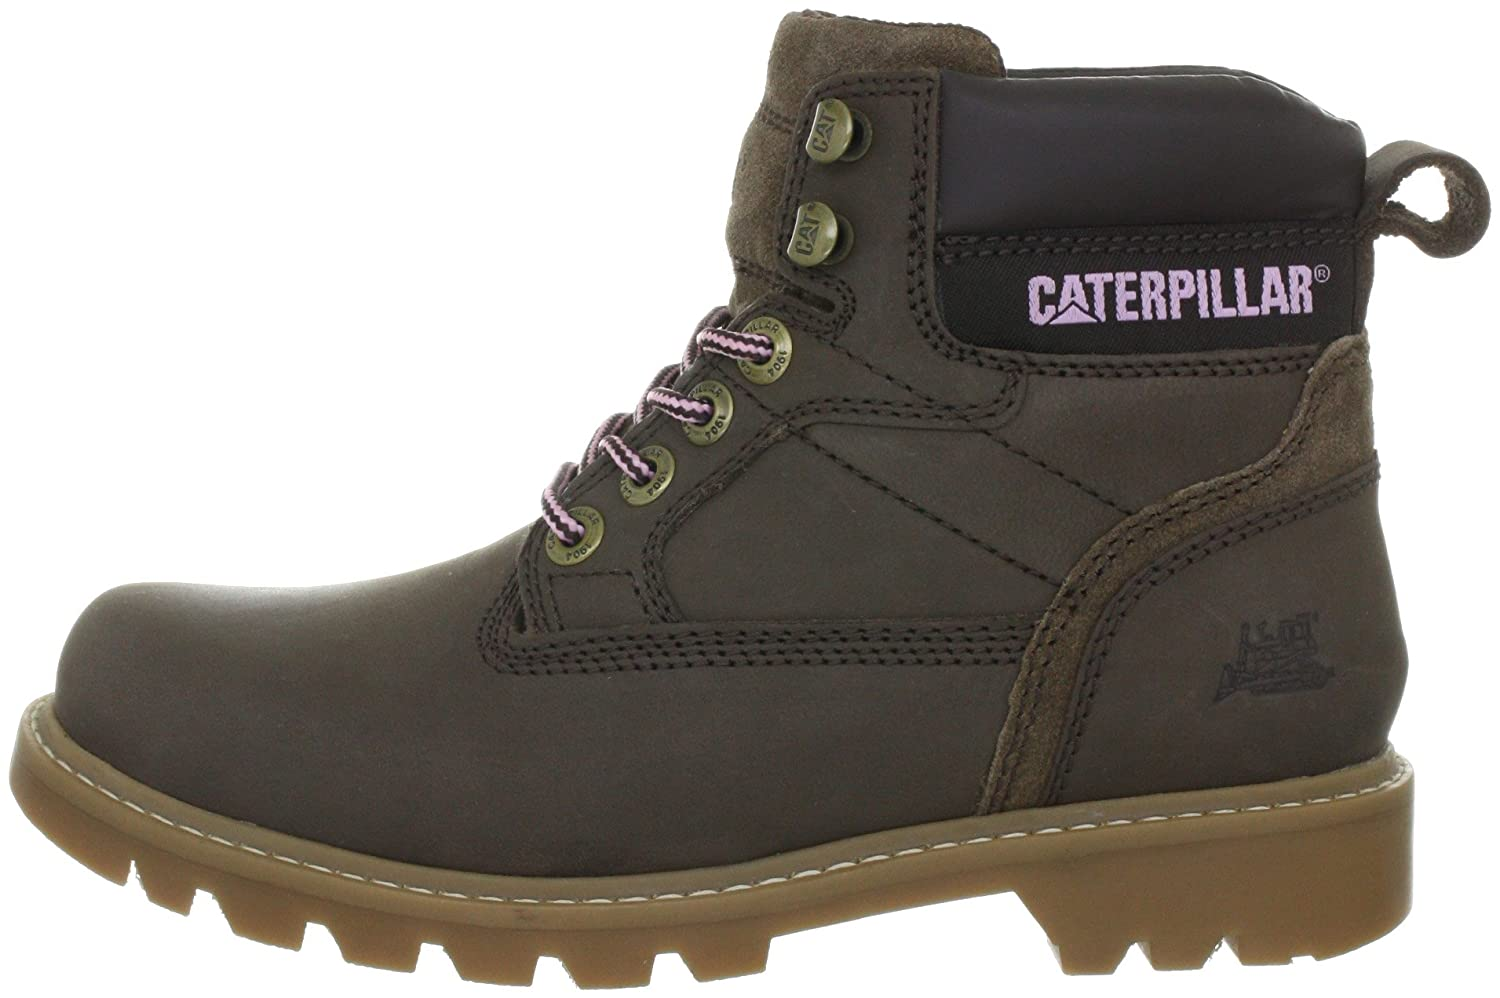 477419bd76c5 Cat Footwear WILLOW P305059 Boots  Amazon.de  Schuhe   Handtaschen